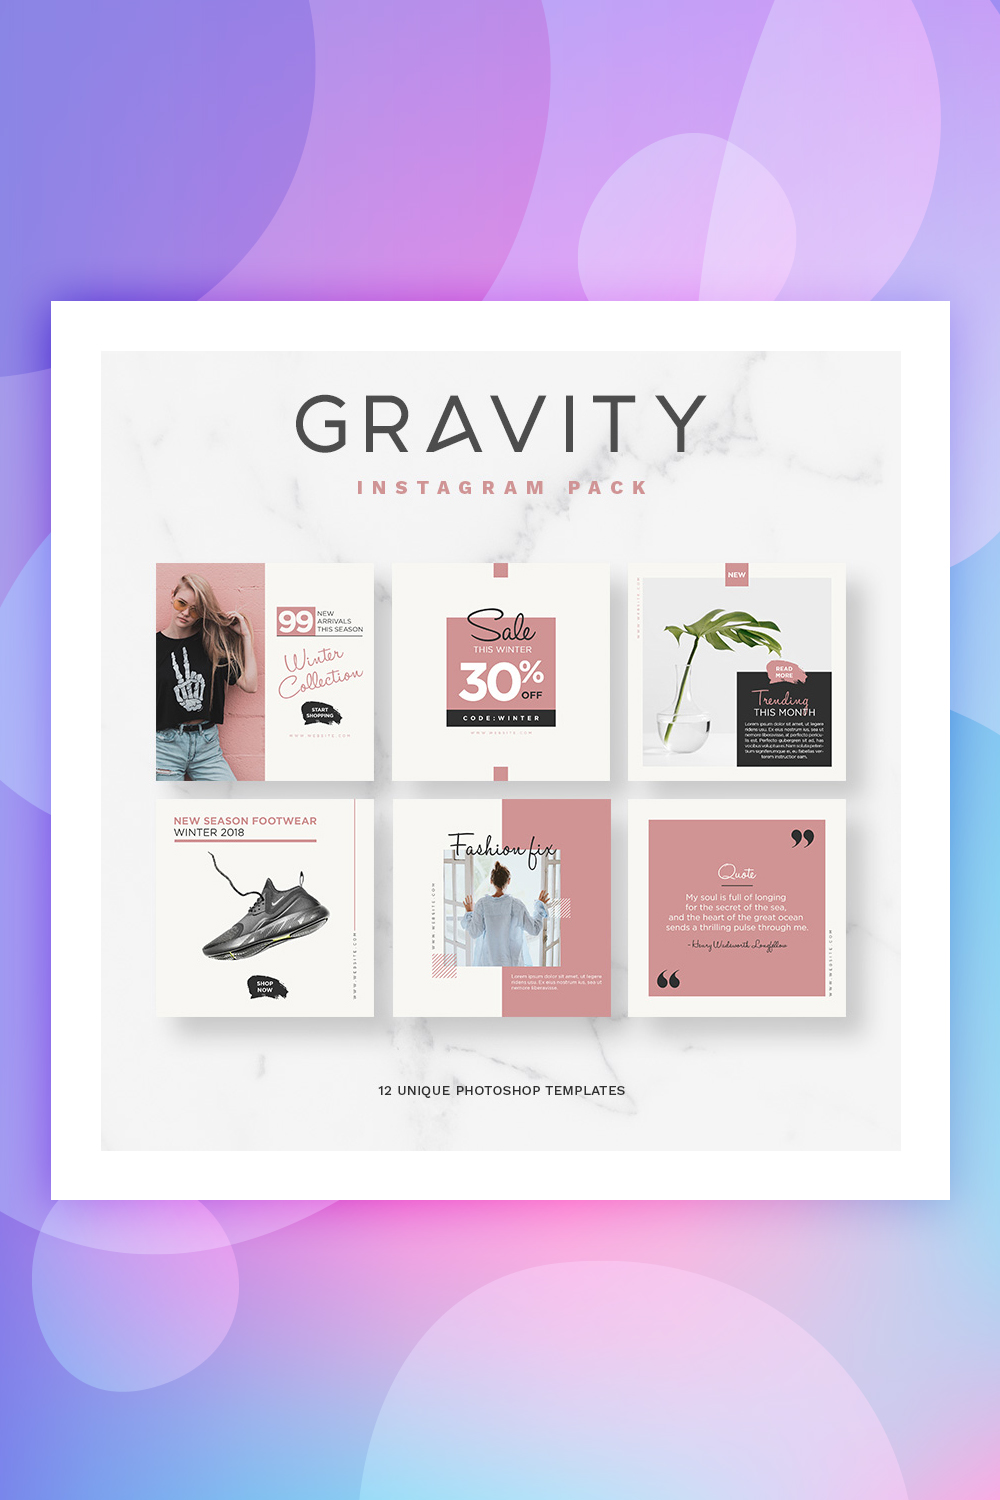 Gravity Instagram Pack Social Media